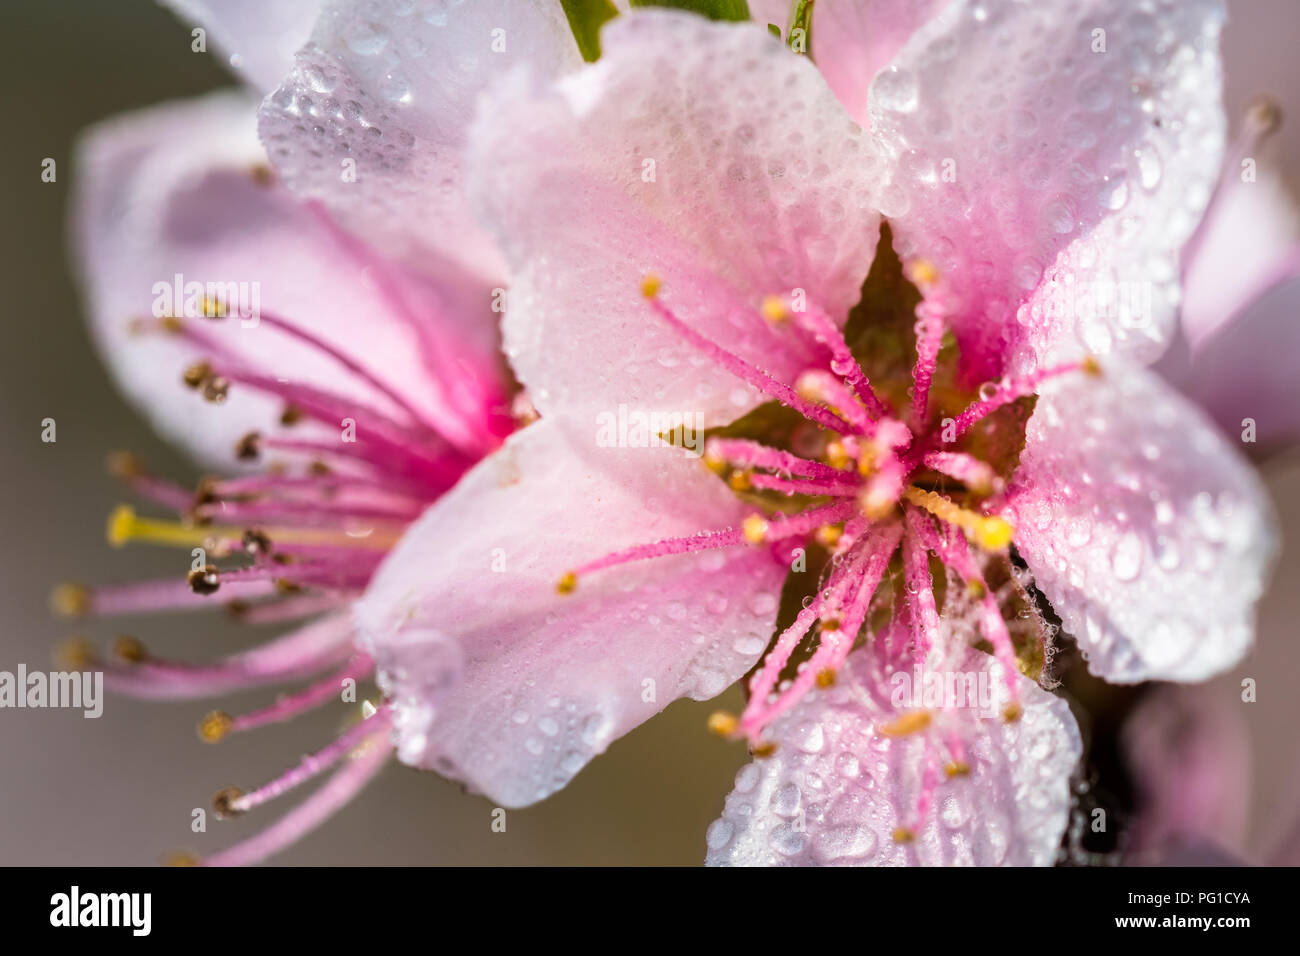 Detail Of A Beautiful Blooming Tree In A Spring Nice Pink Flowers